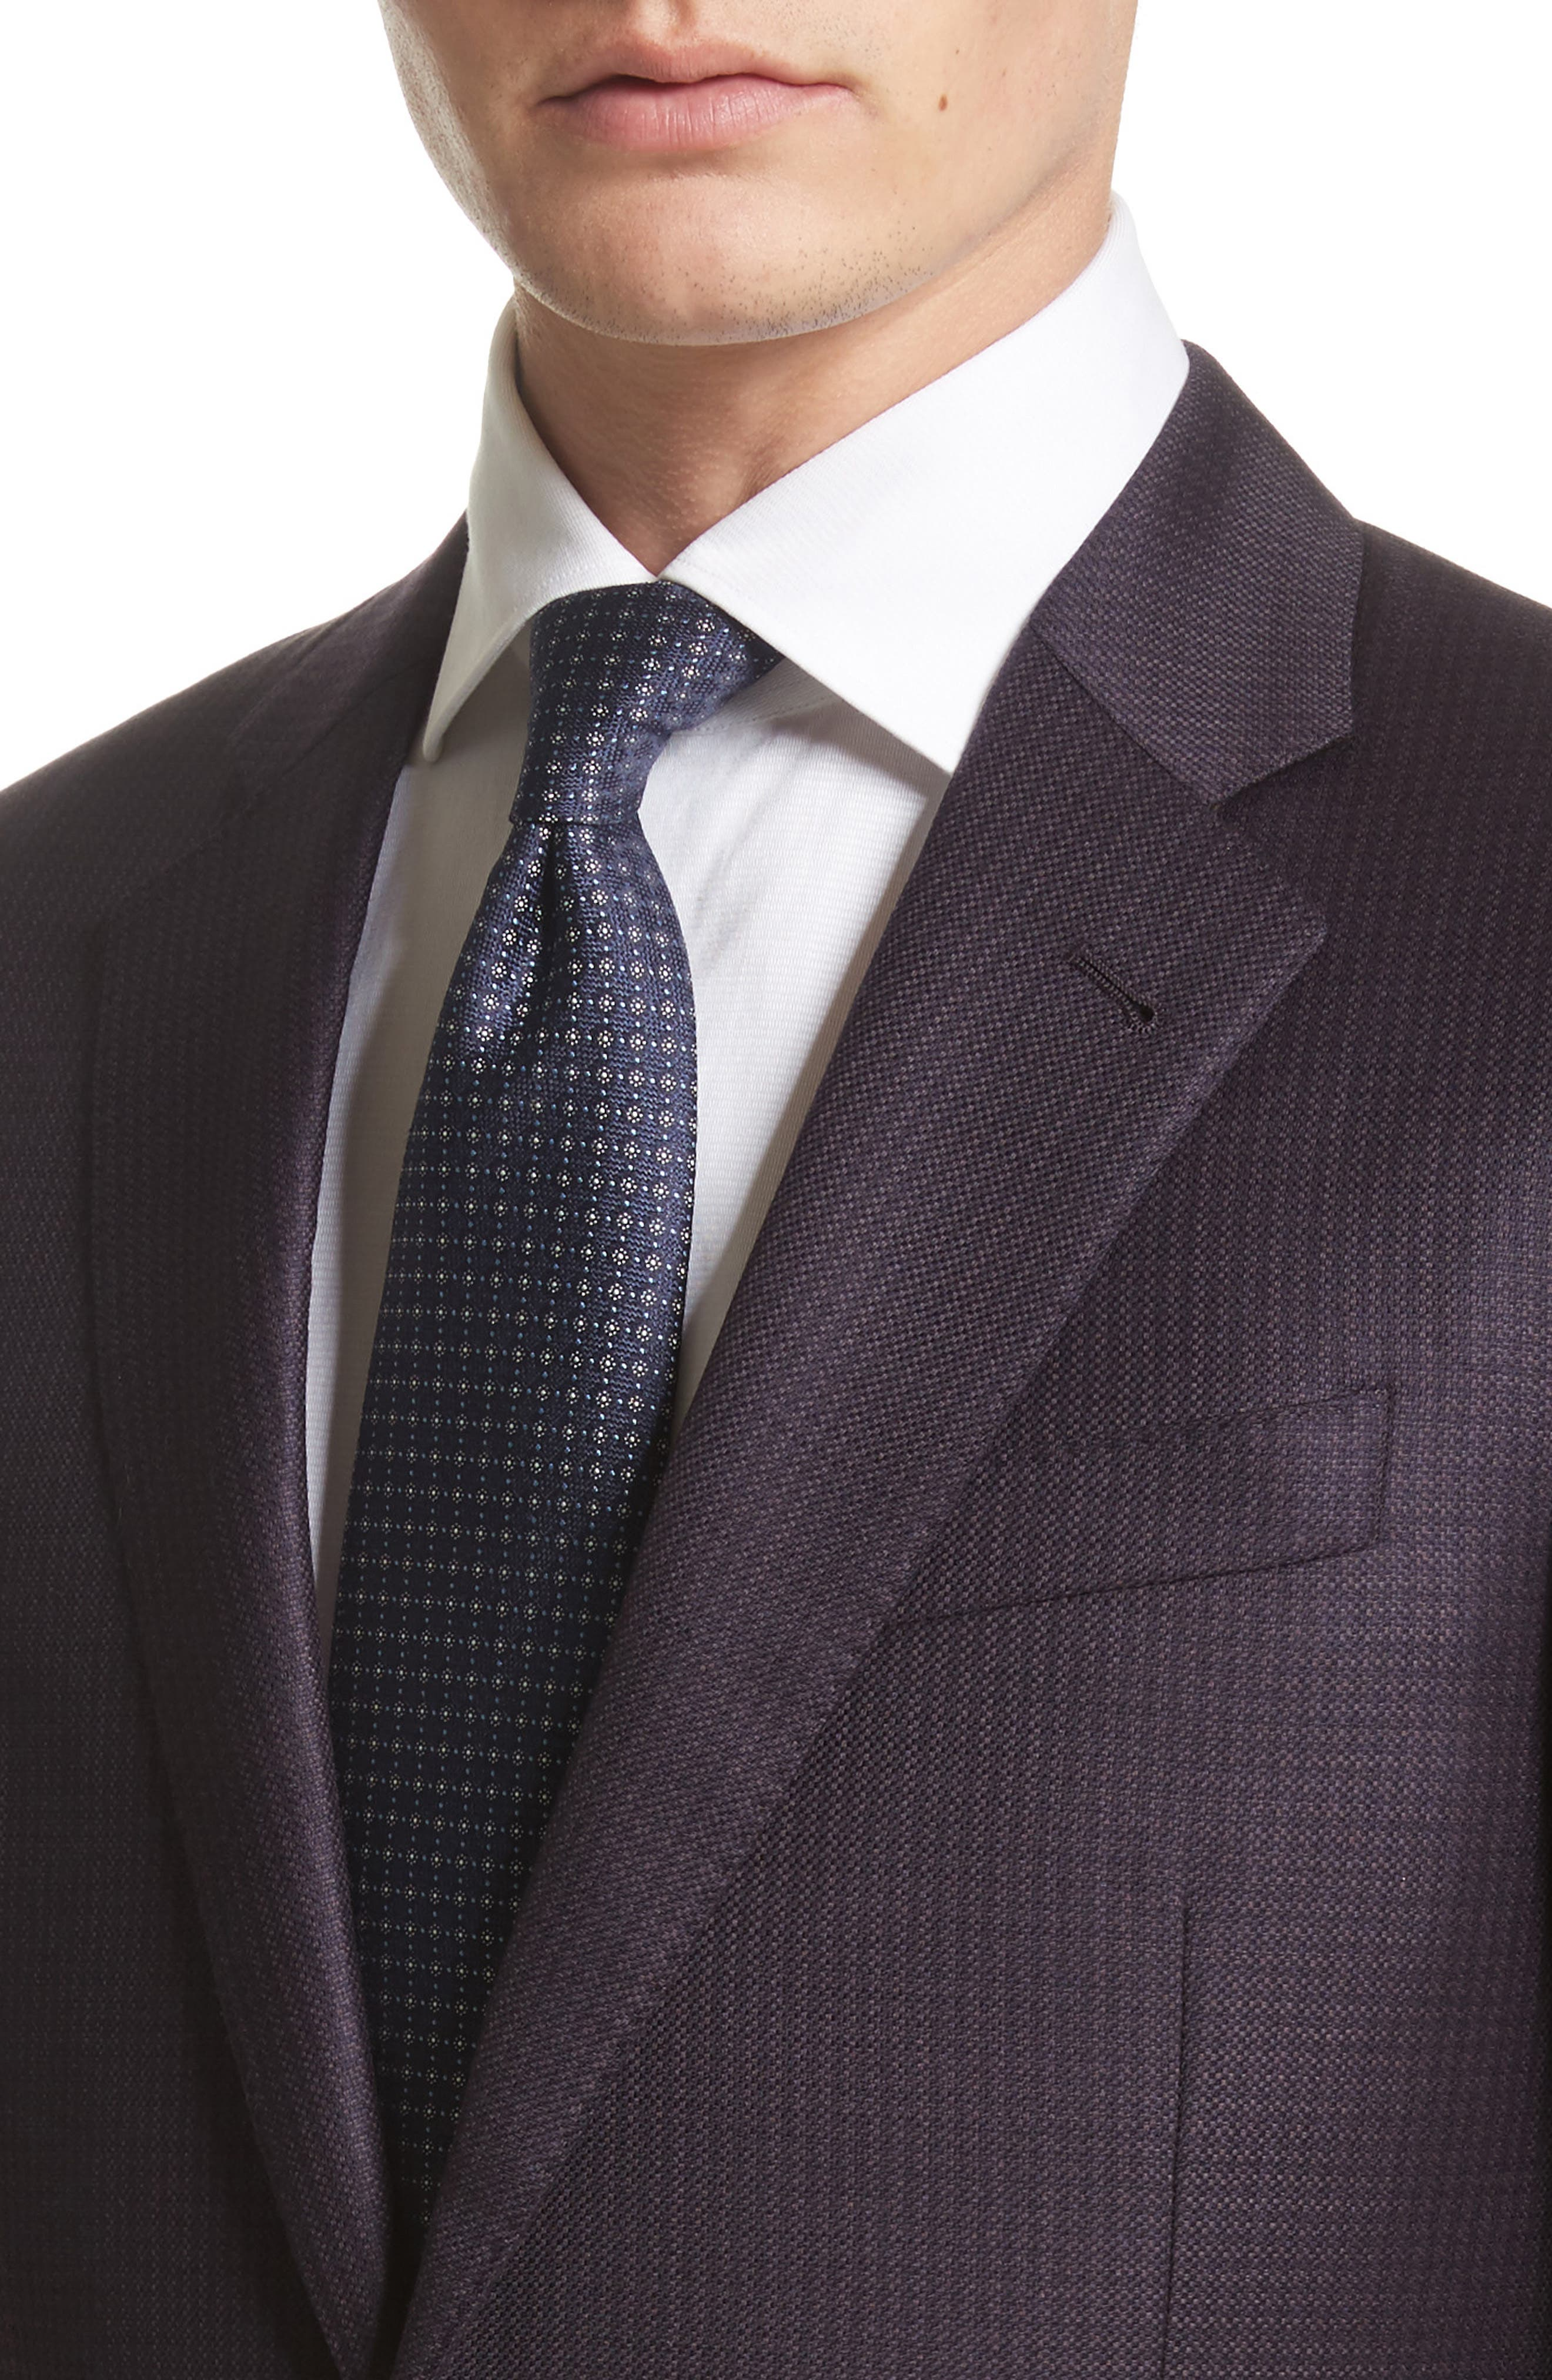 G-Line Trim Fit Houndstooth Wool Sport Coat,                             Alternate thumbnail 4, color,                             Solid Dark Red